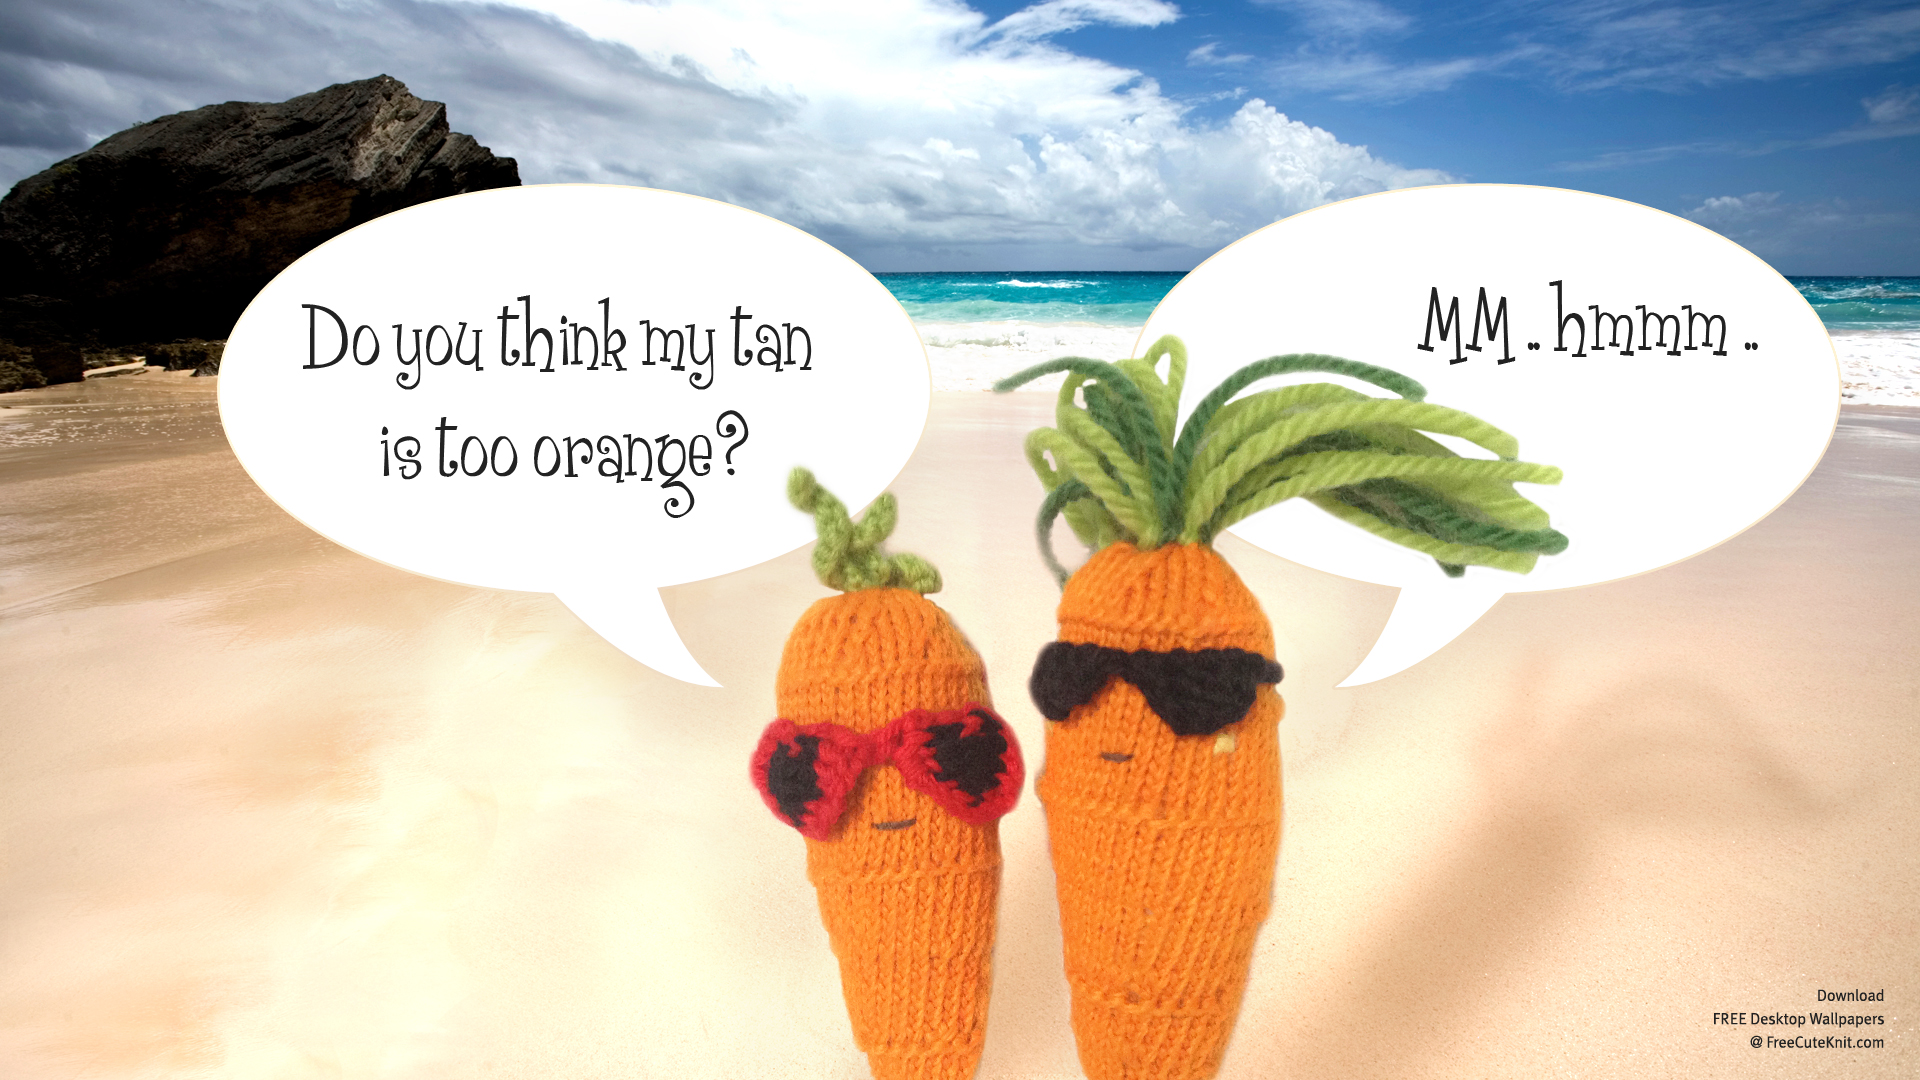 Sweet Carrot + Cool Carrot at the Beach Wallpaper by AmareeLis